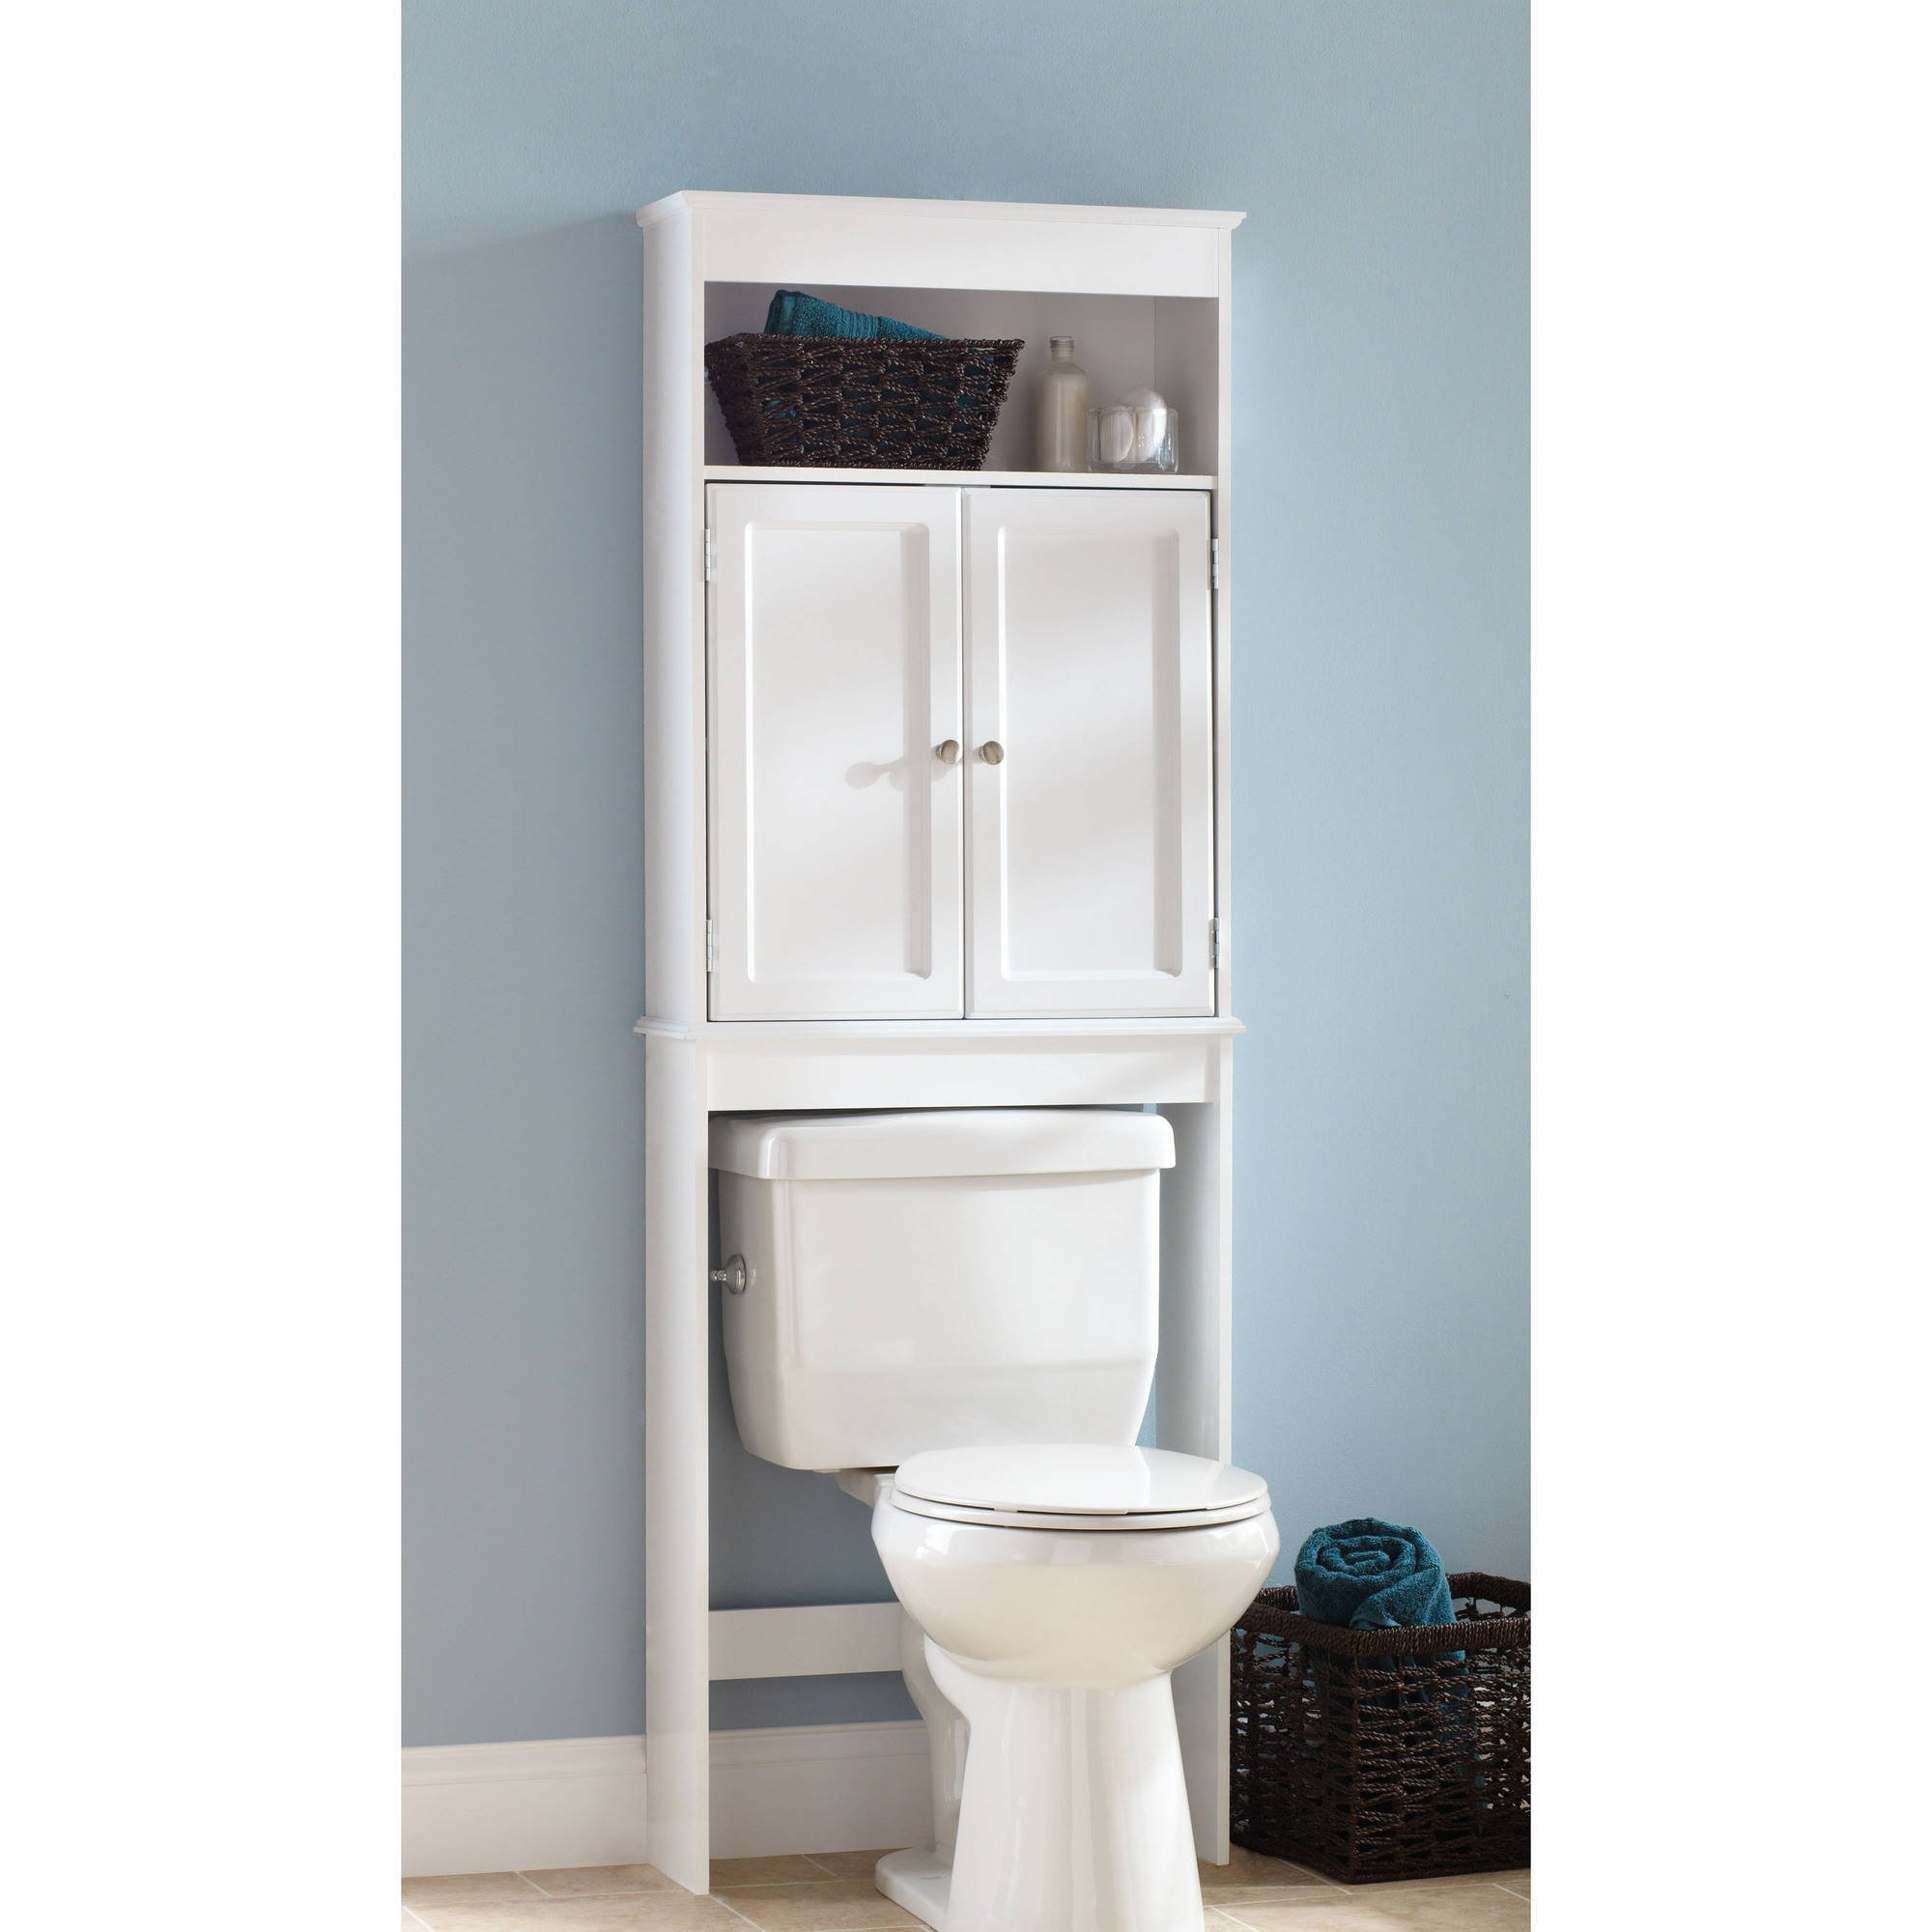 Hawthorne Place Wood Space Saver, White